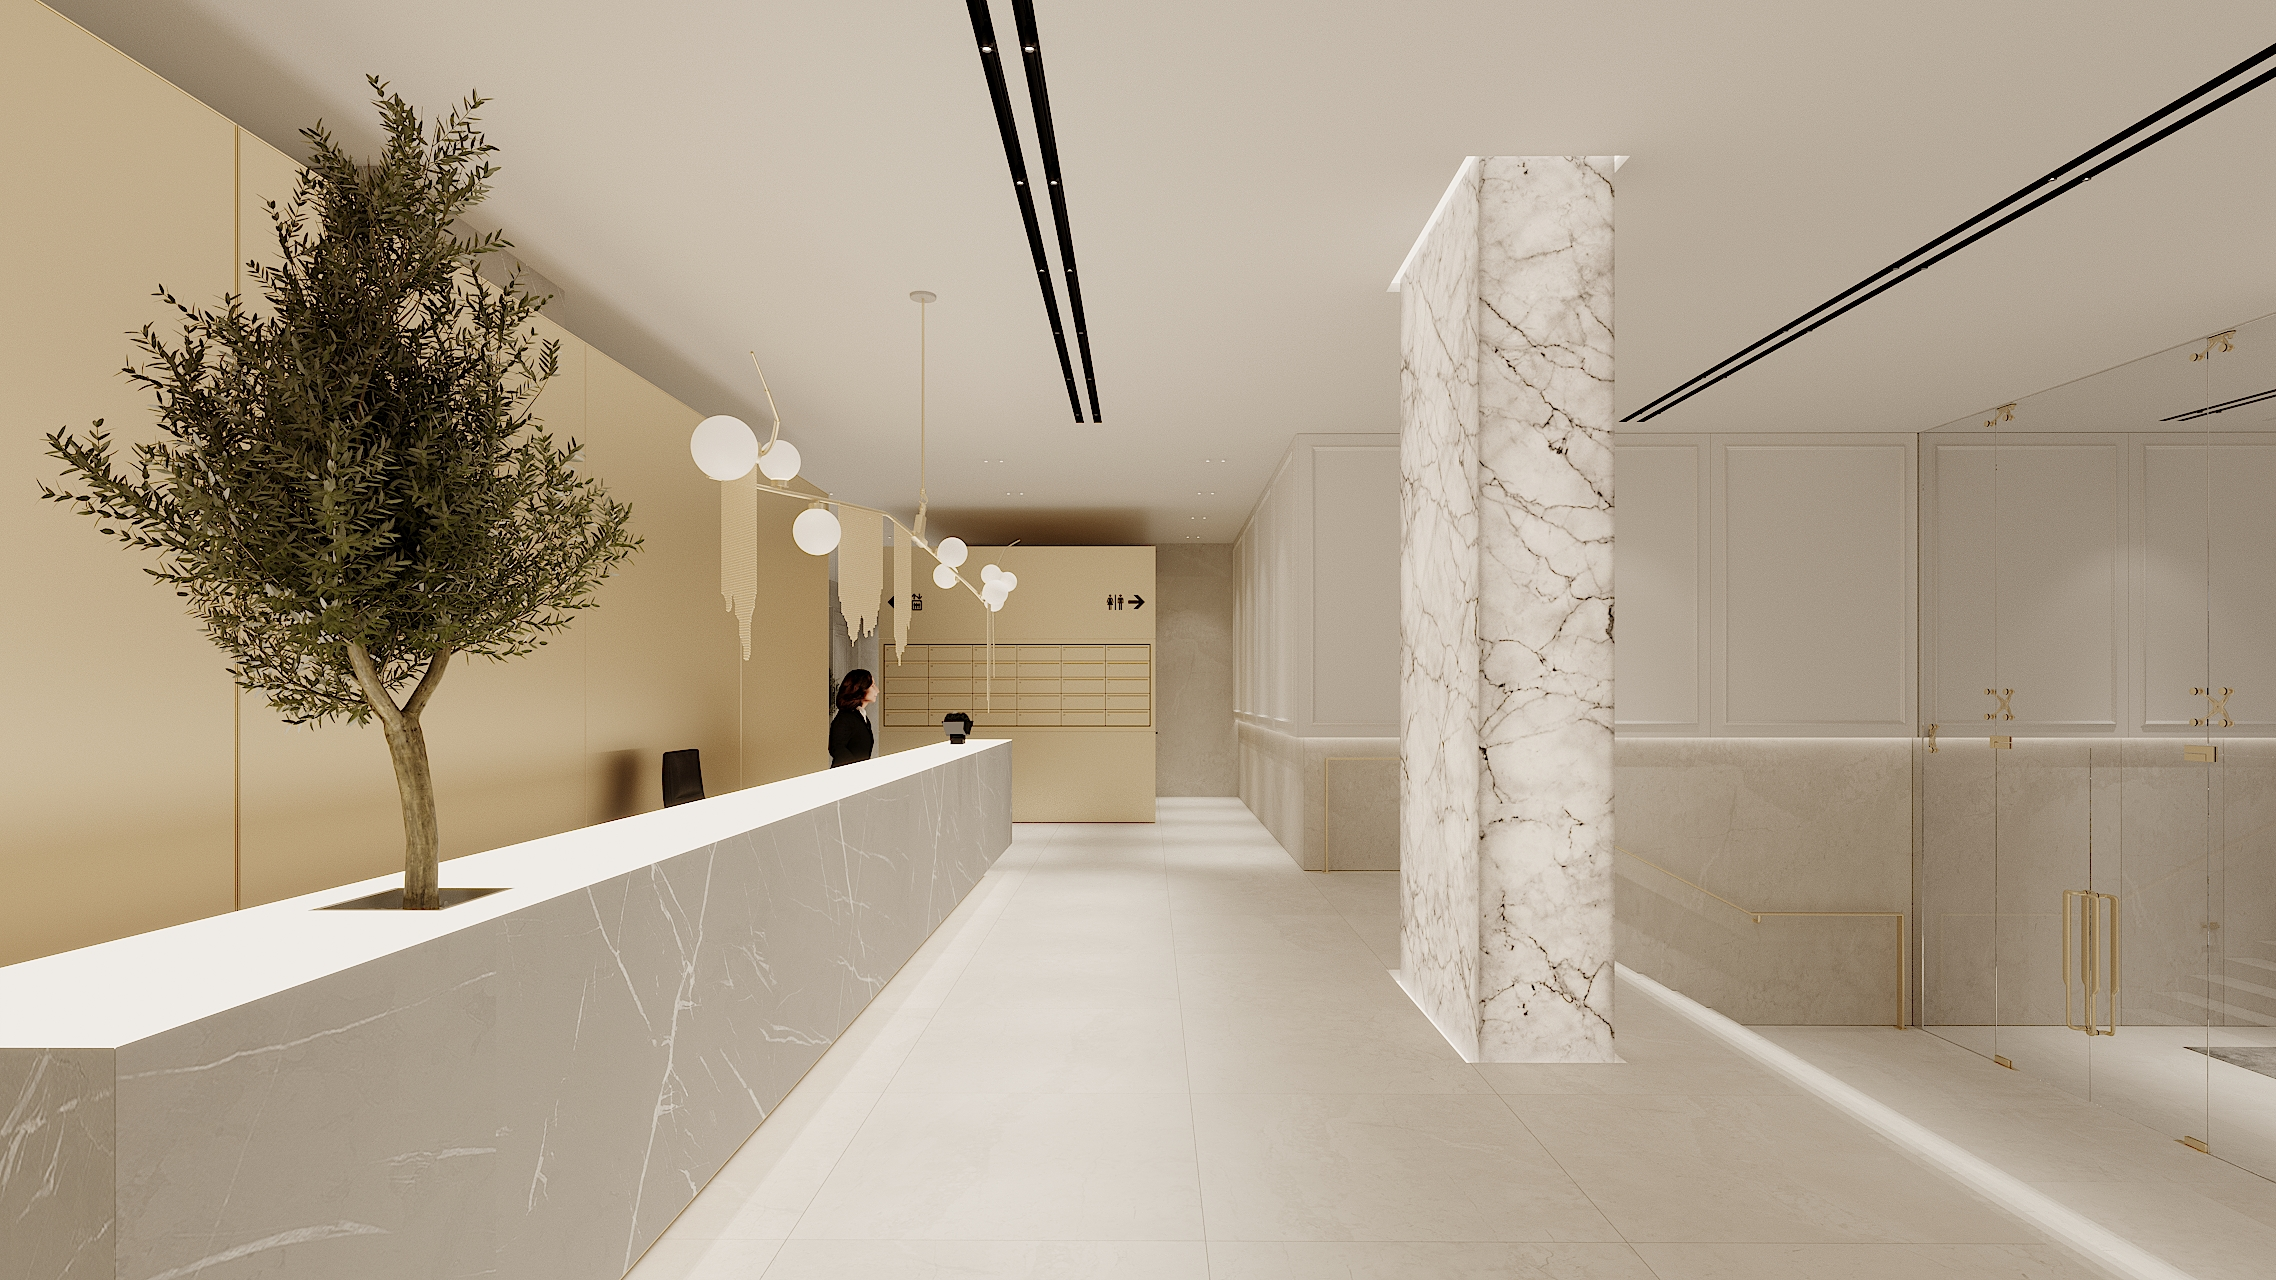 RESIDENTIAL BUILDING HALL 1 concept 1_6